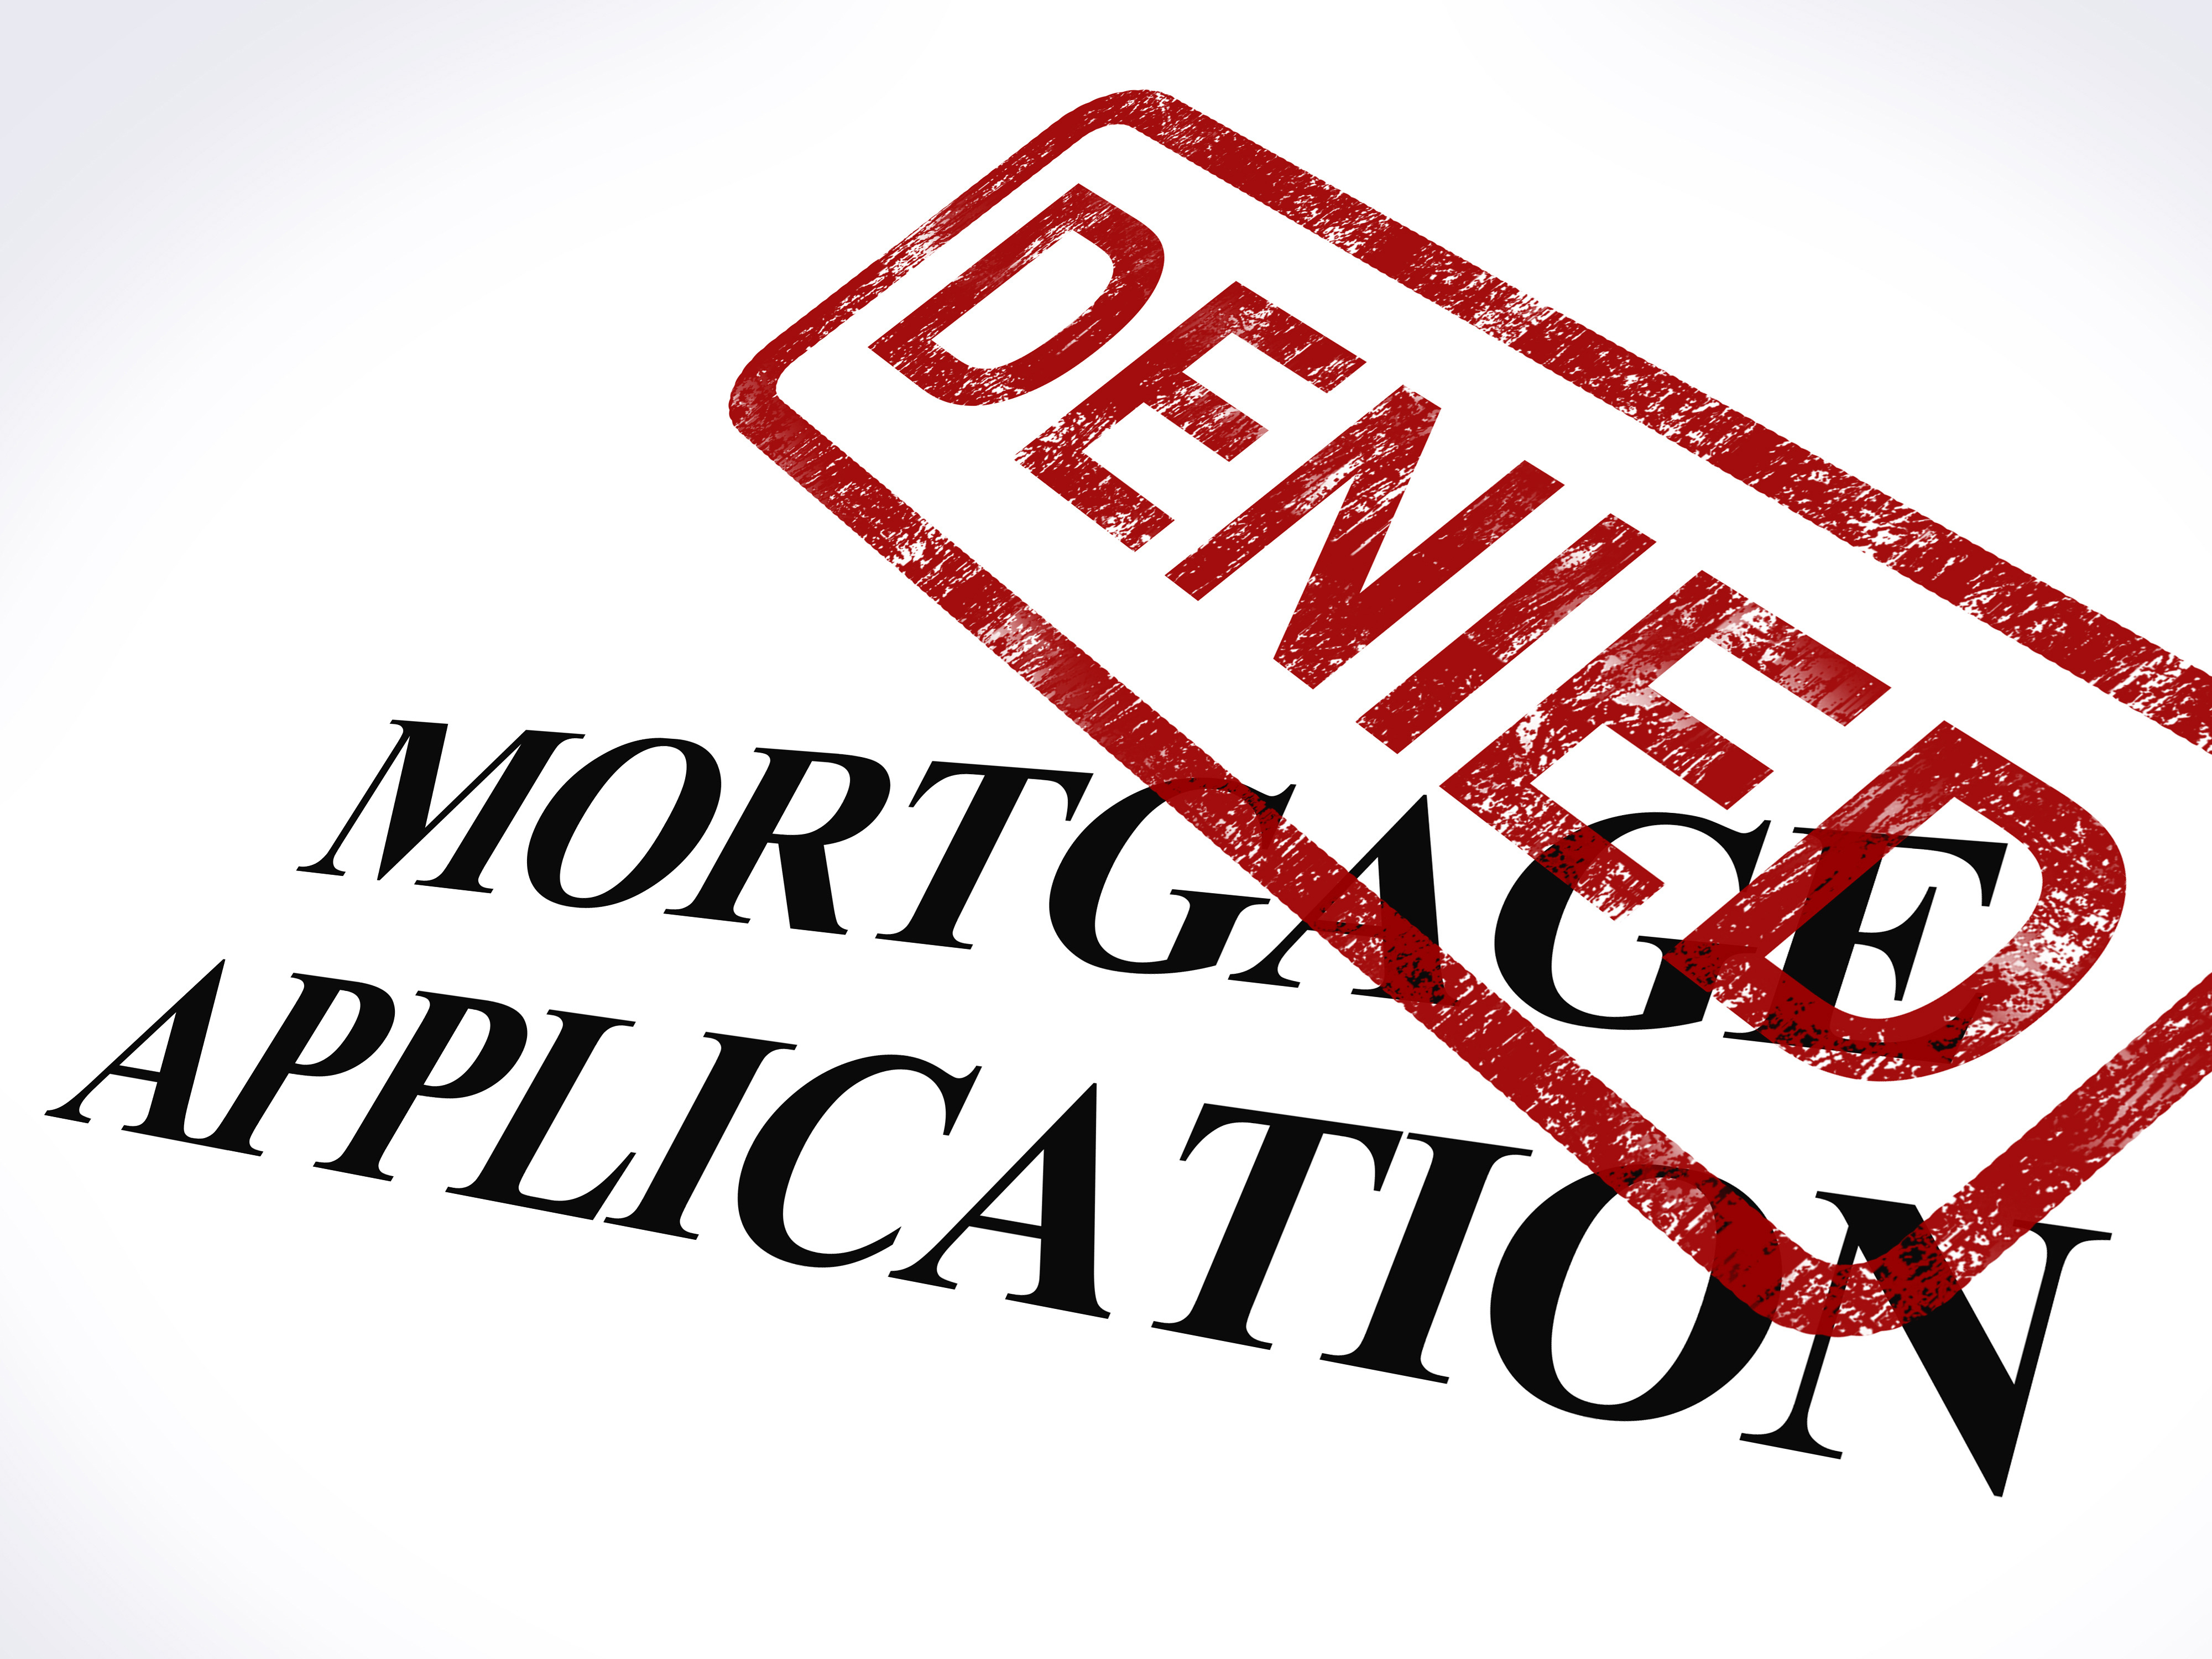 mortgage-application-denied-stamp-shows-home-finance-refused_M14ZP7P_ (1).jpg